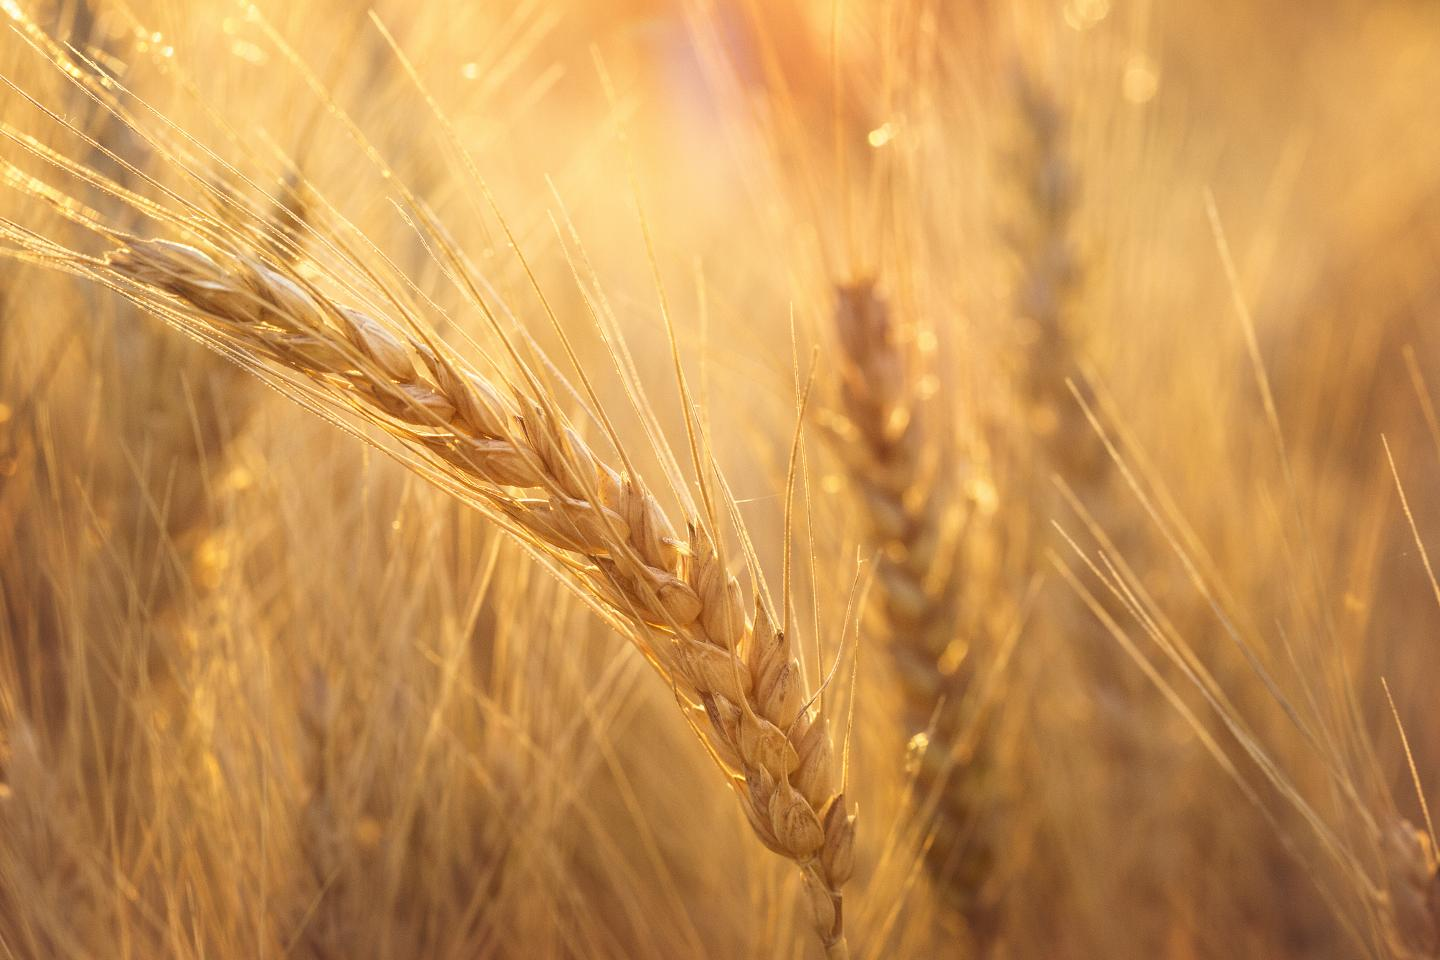 Wheat code finally cracked; wheat genome sequence will bring stronger varieties to farmers